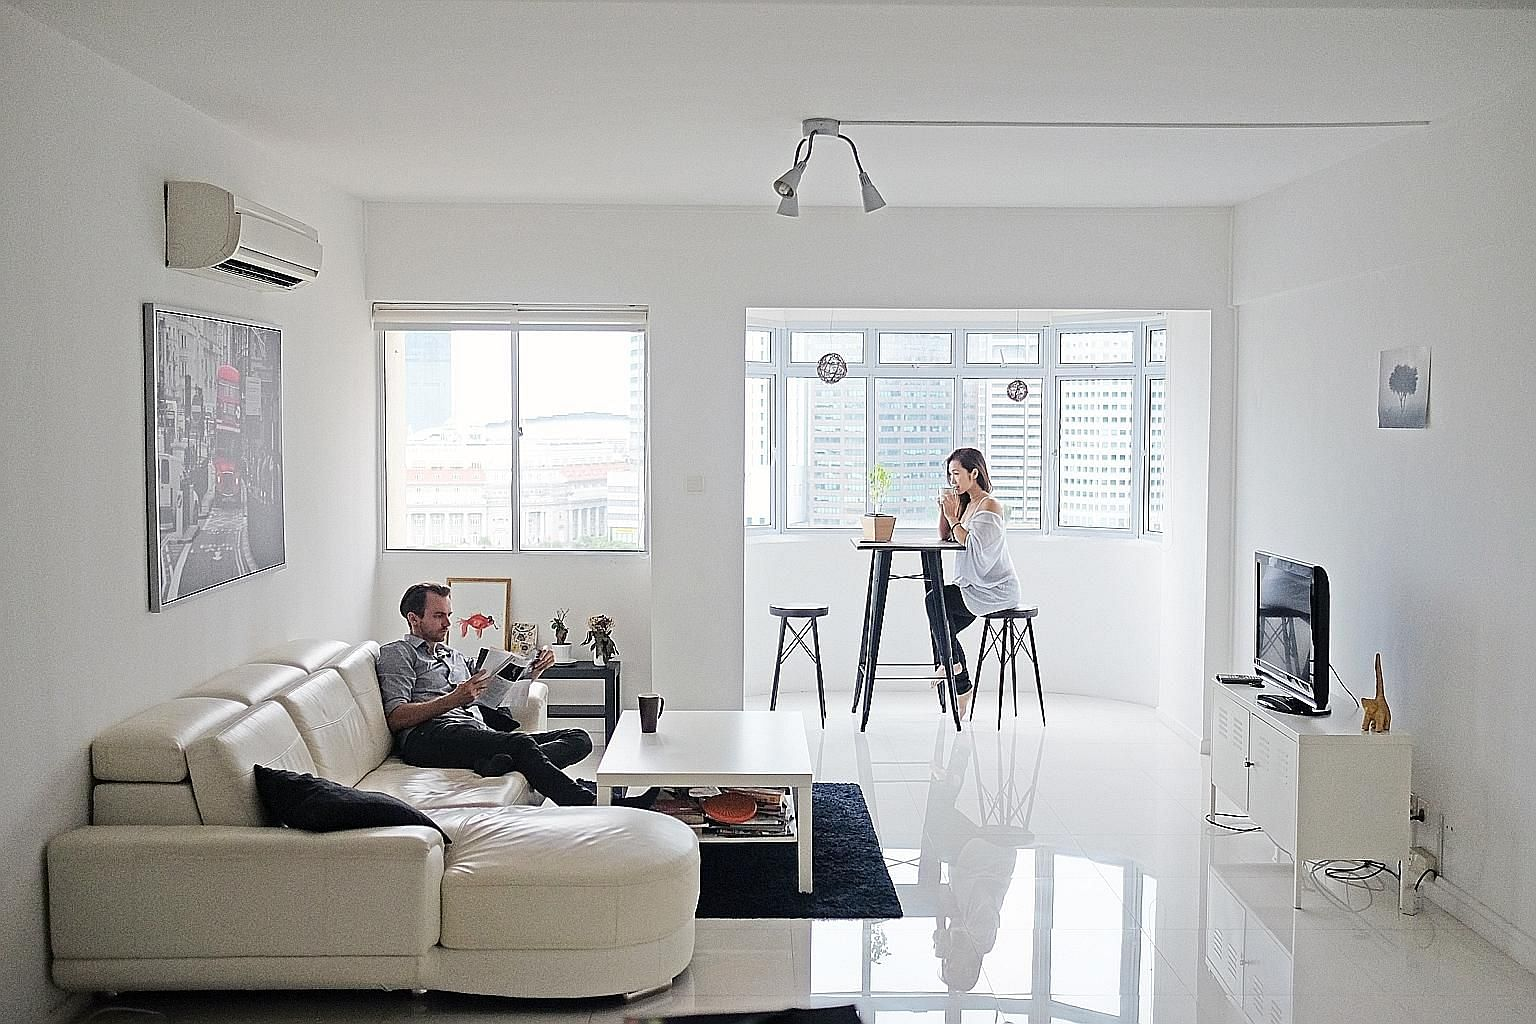 Hmlet provides custom-designed rooms and apartments with monthly rolling contracts, as well as offerings such as cleaning, laundry services and professional workshops. The co-living company also uses its proprietary technology to match flatmates.